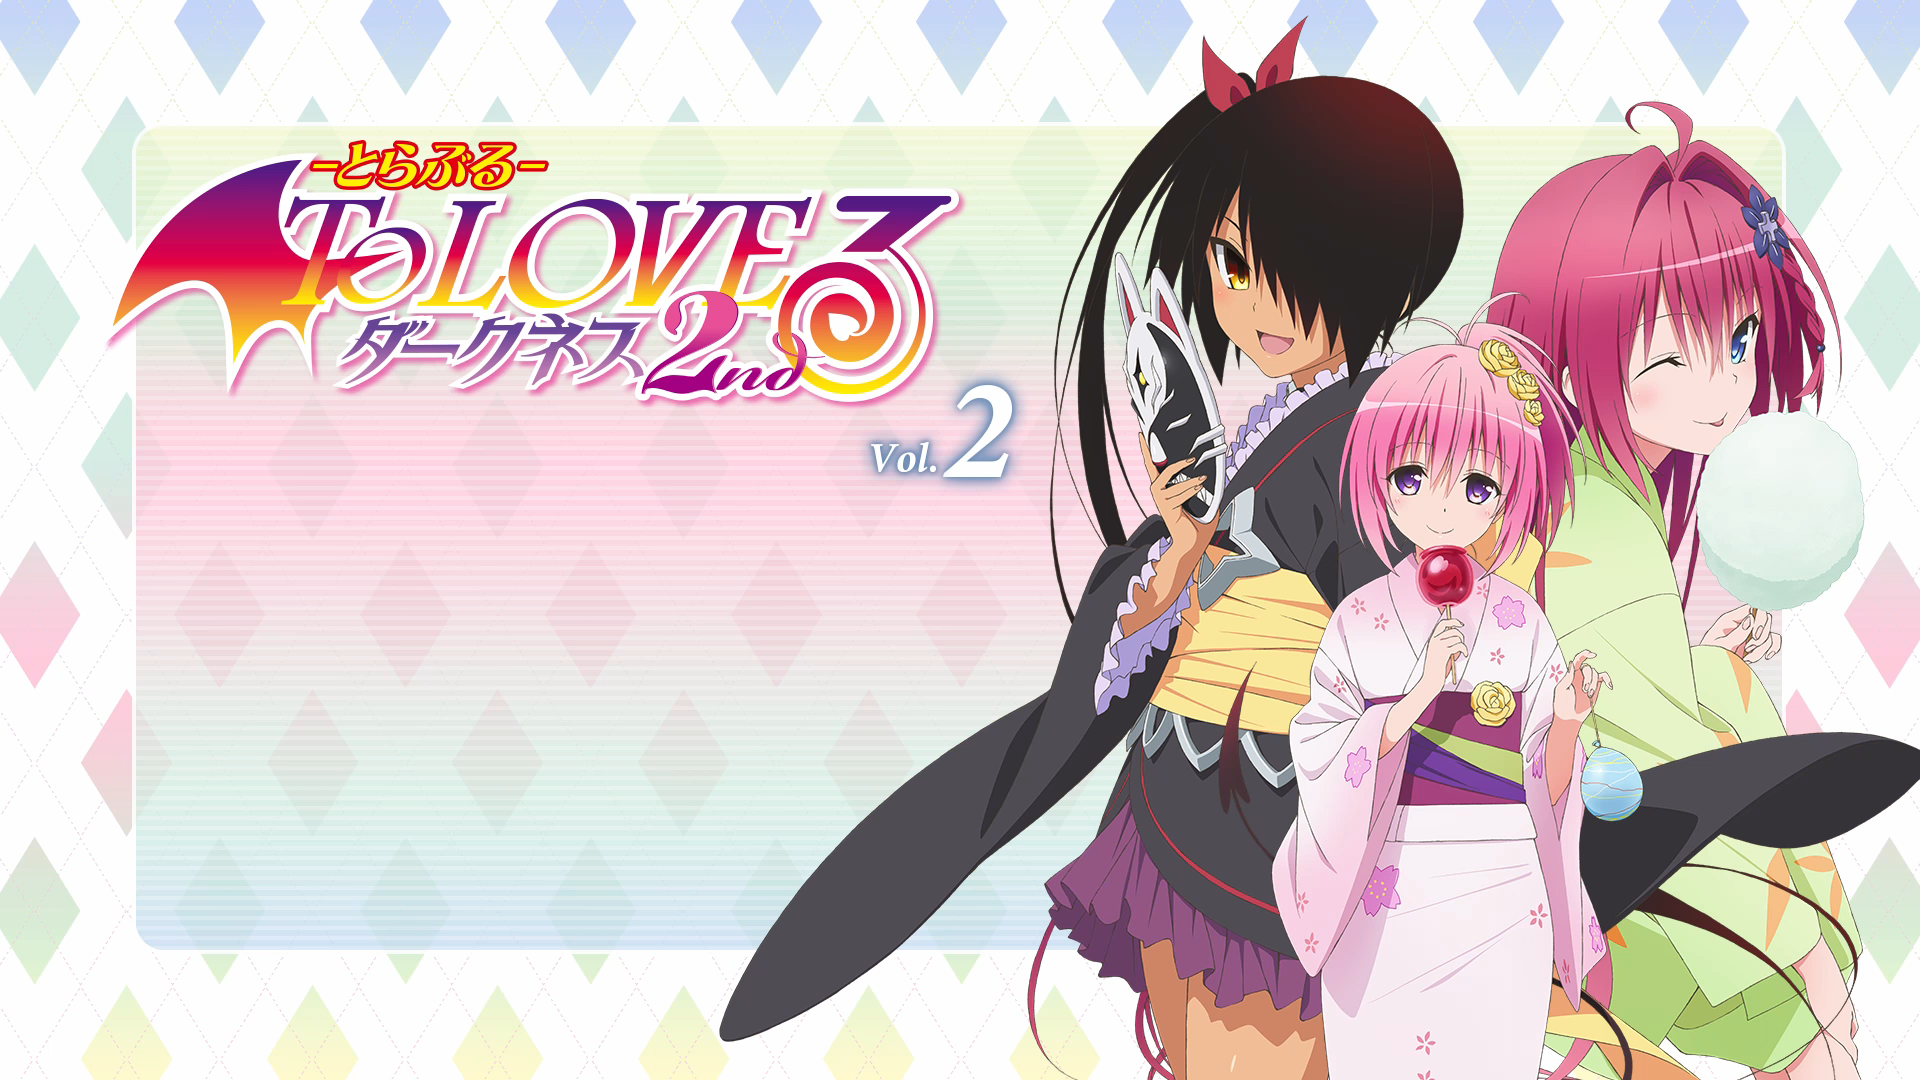 Wallpaper Hd To Love Ru Darkness : To Love-Ru: Darkness Full HD Wallpaper and Background 1920x1080 ID:696142